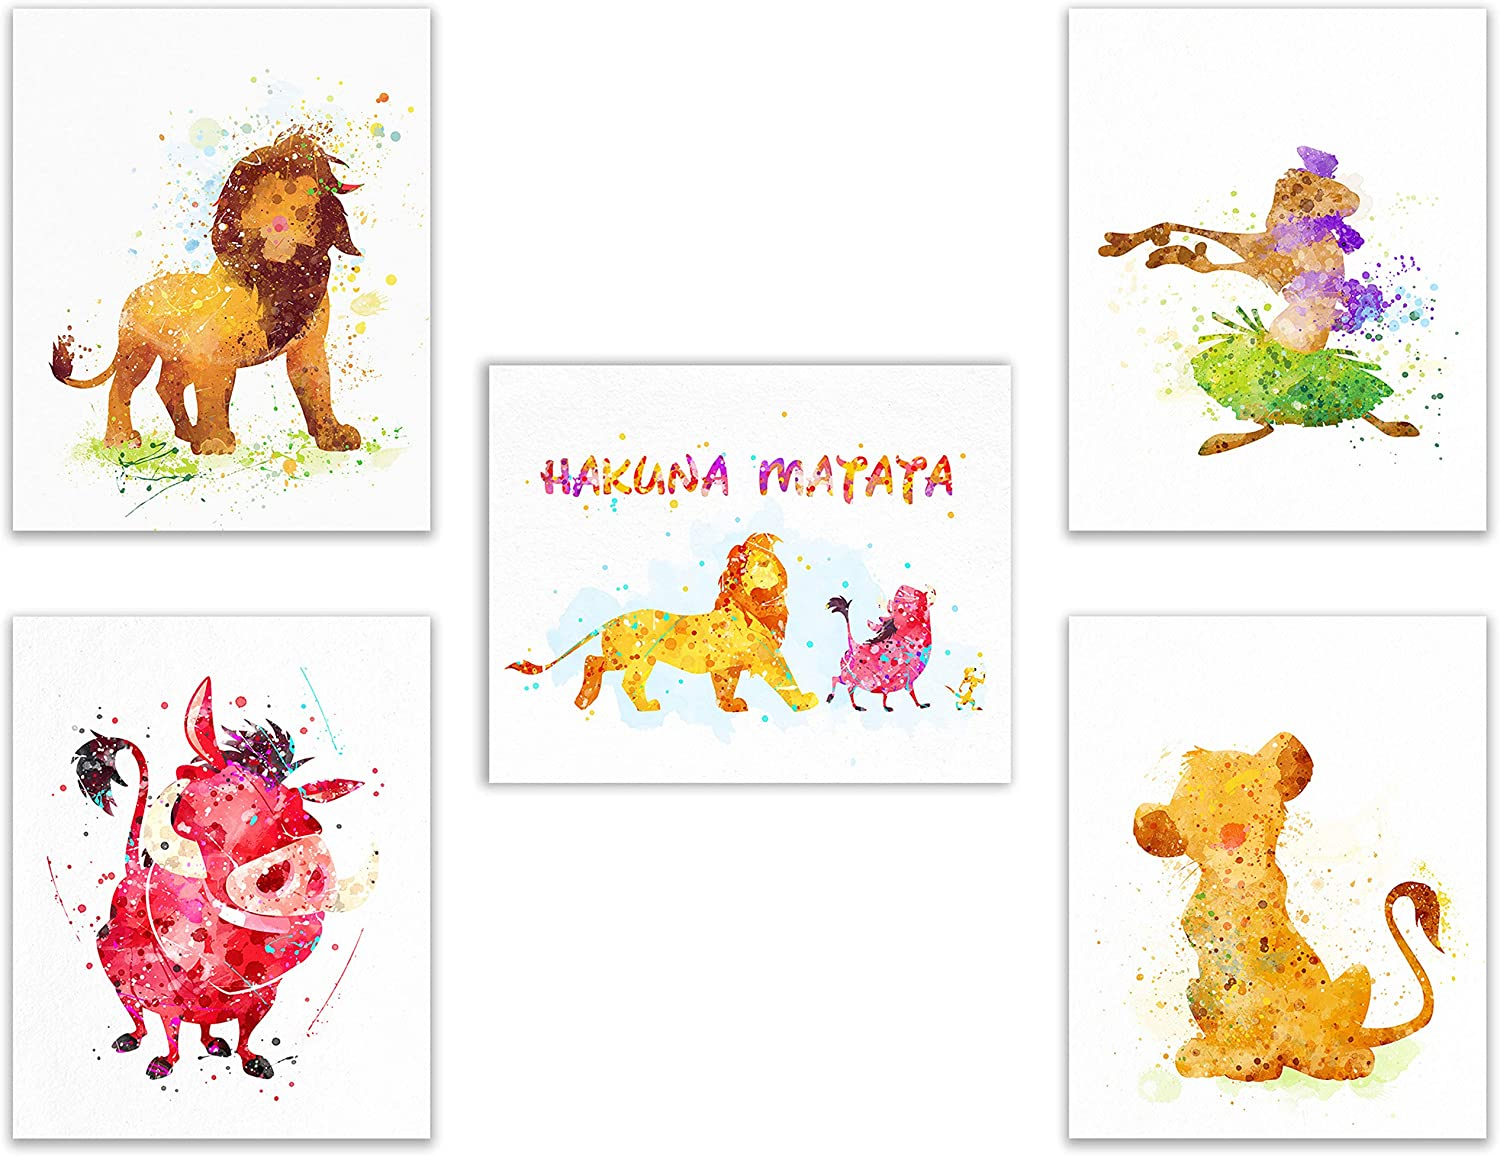 Lion King Kids Prints - Set of 5 Cute (8 inches x 10 inches) Art Decor Photos - Simba Pumbaa Timon Nala